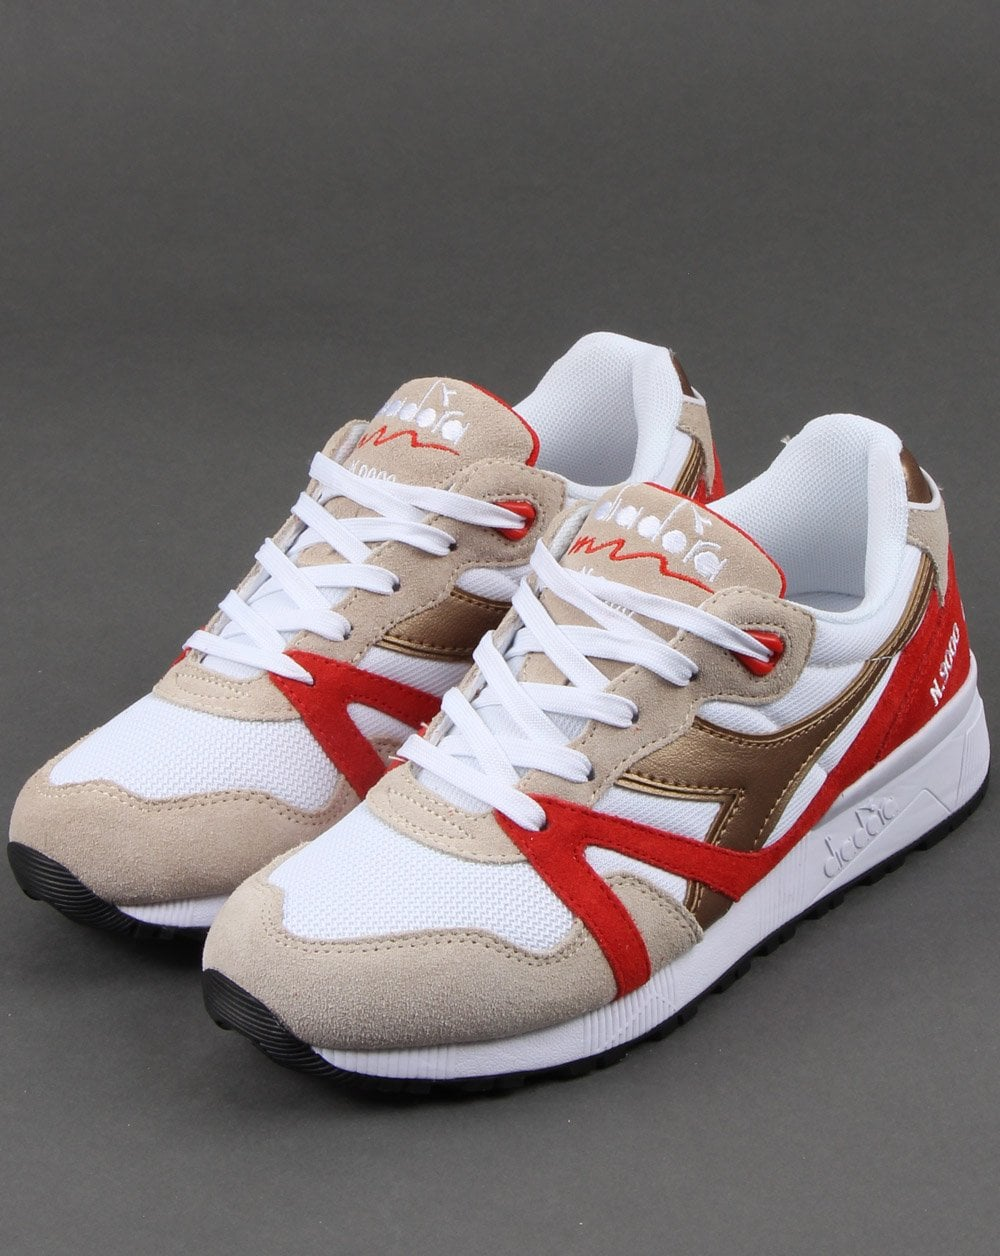 Diadora N9000 White Gold Red